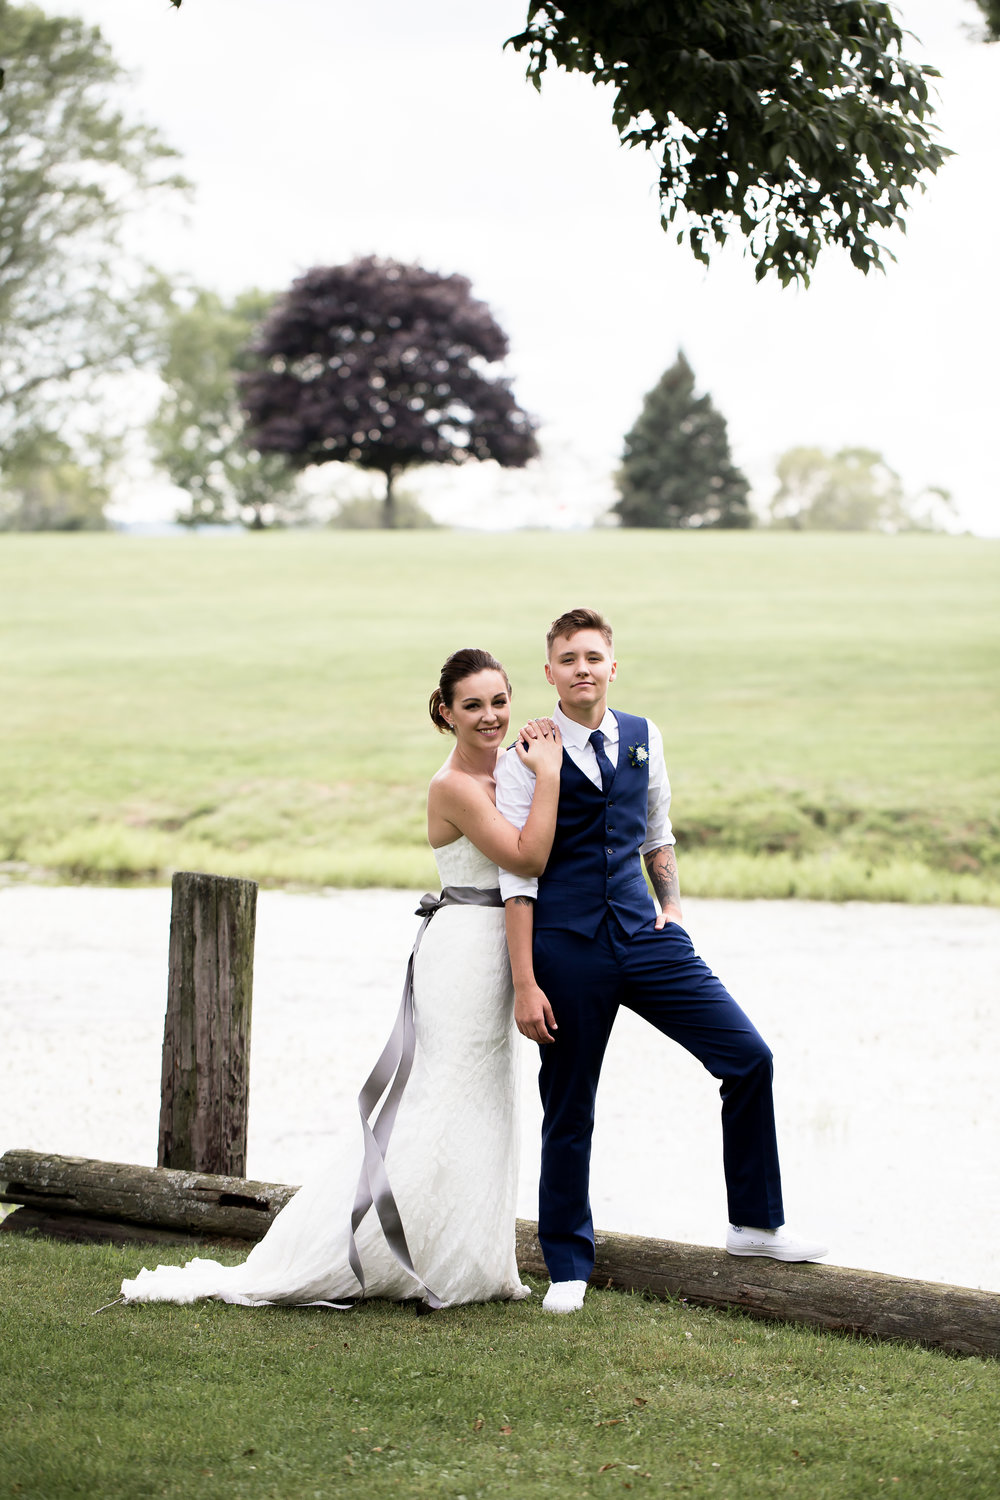 Gandjos_Tinko_BackSeatPhotography_backseatphoto84.JPG